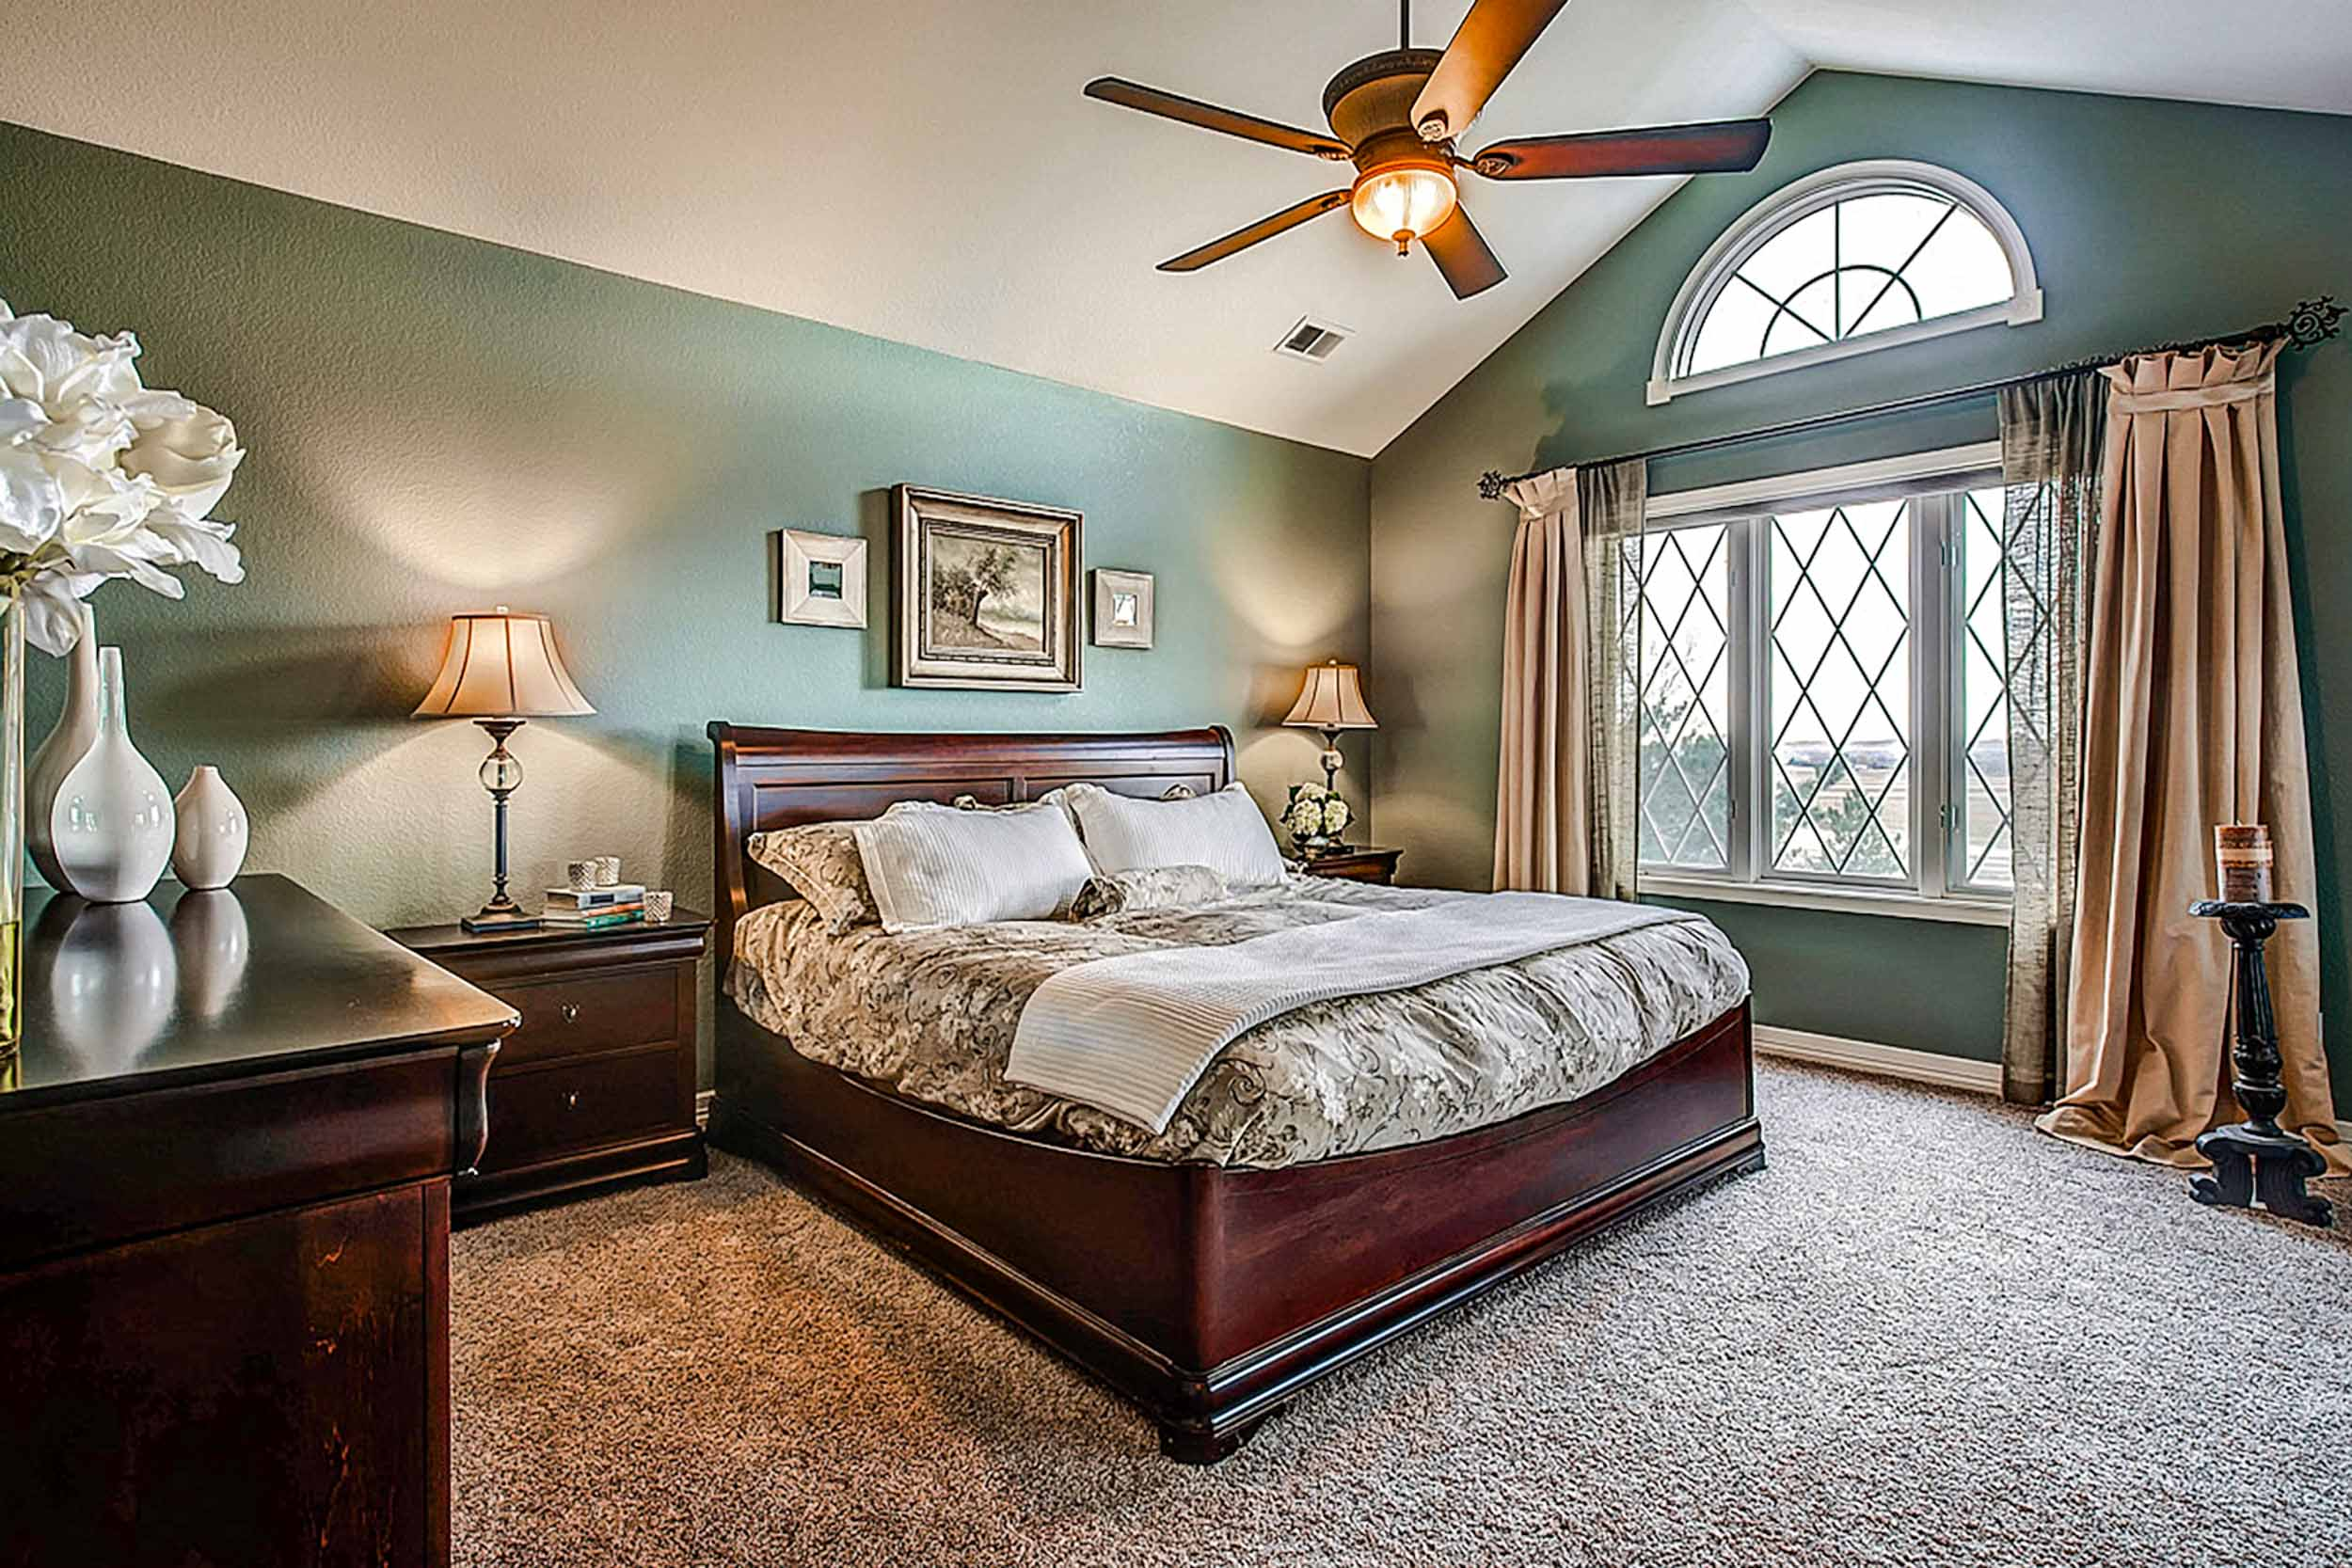 Haven-Interiors-Southern-Belle-BedroomA.jpg